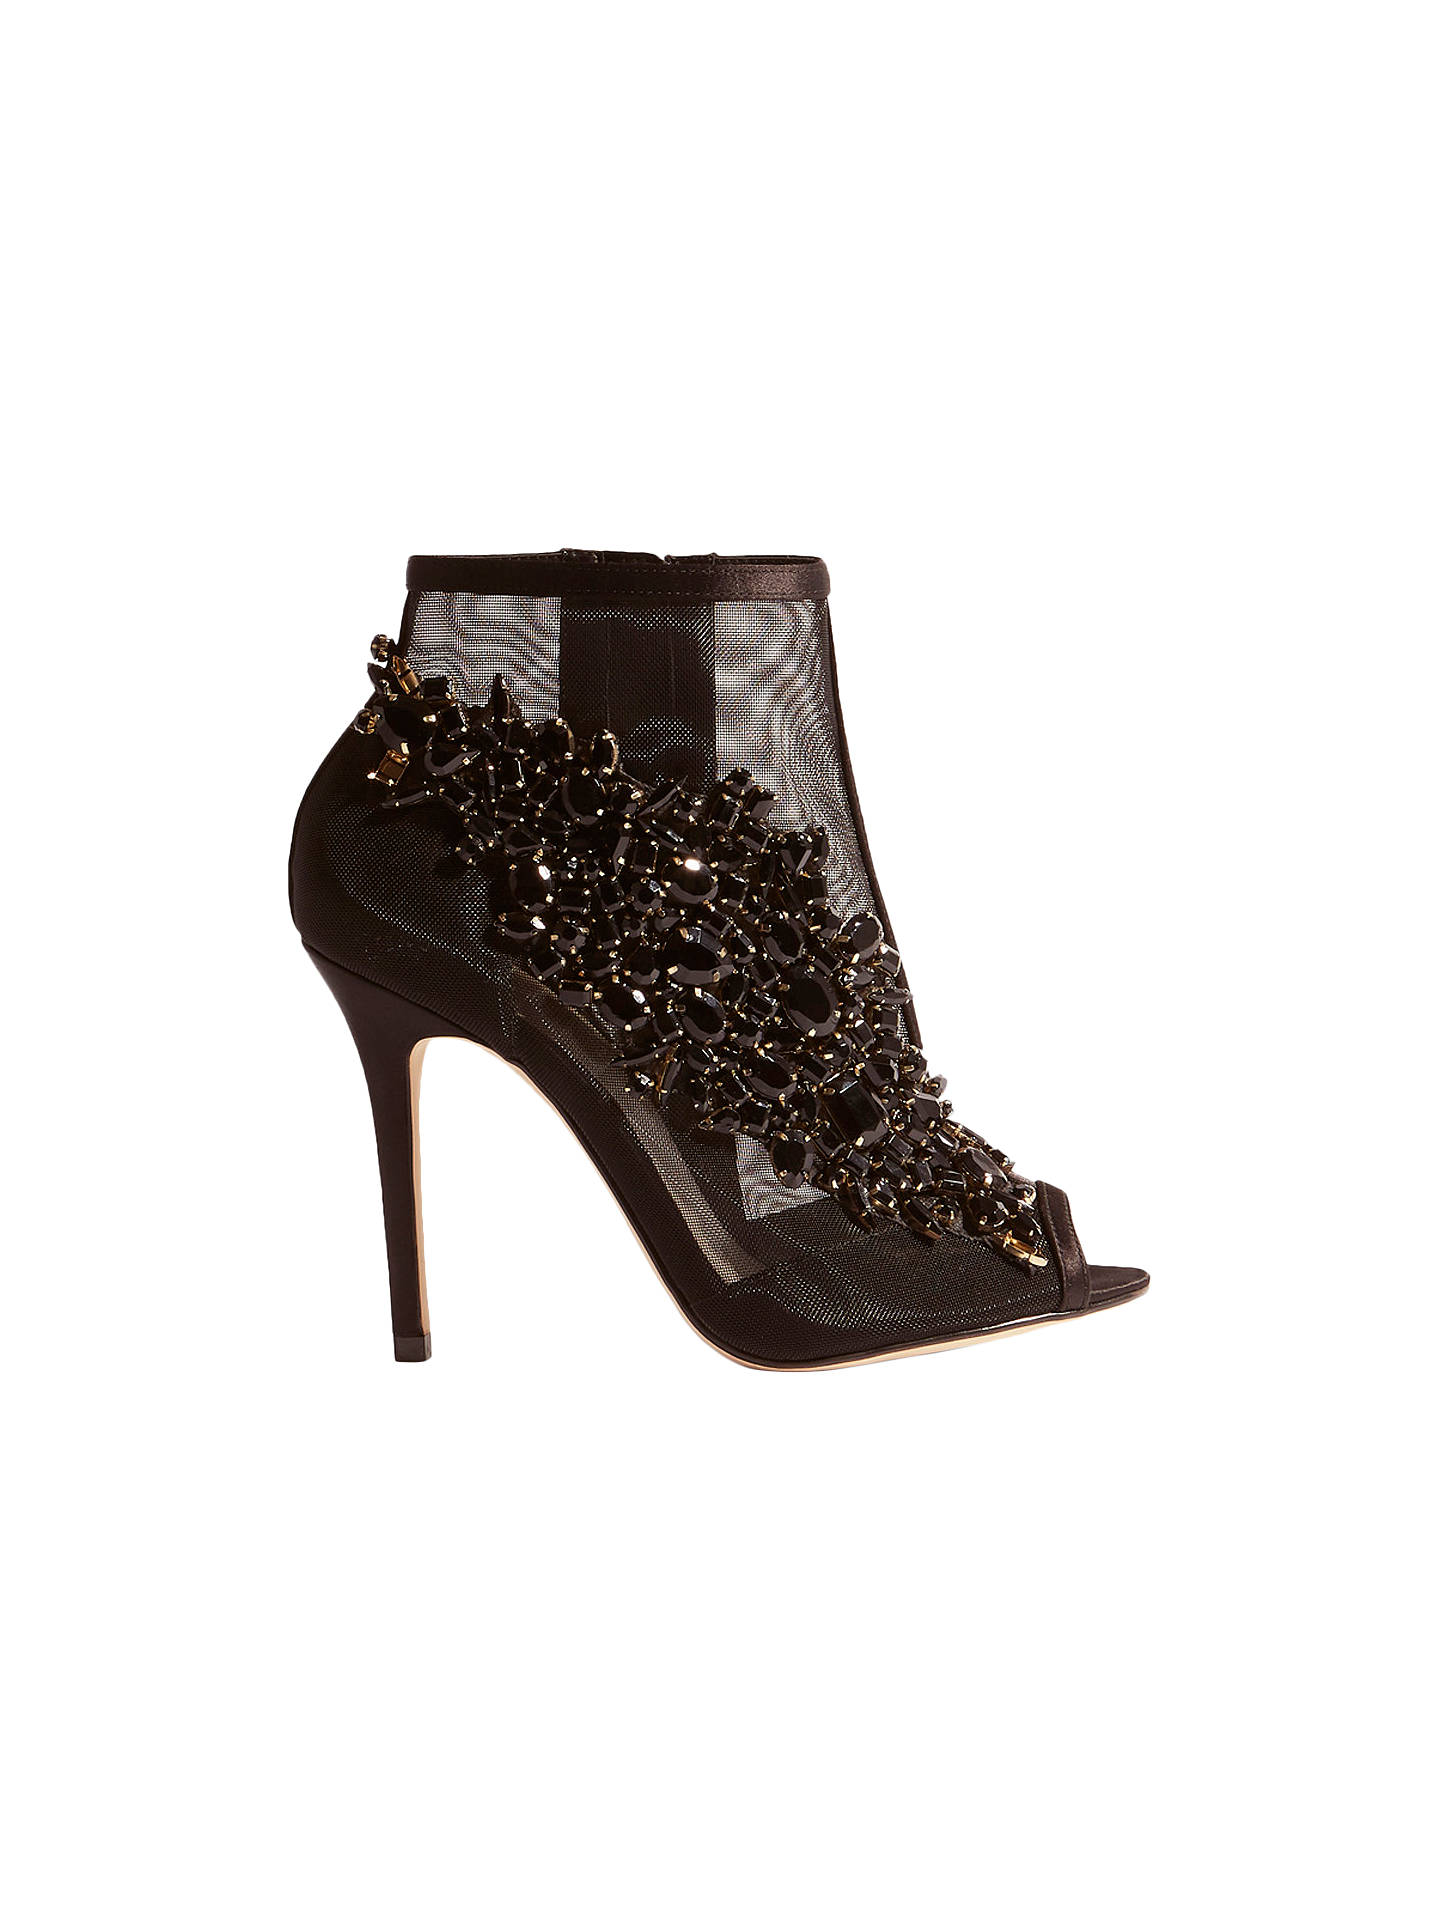 BuyKaren Millen Jewel Sheer Shoe Boots, Black, 3 Online at johnlewis.com